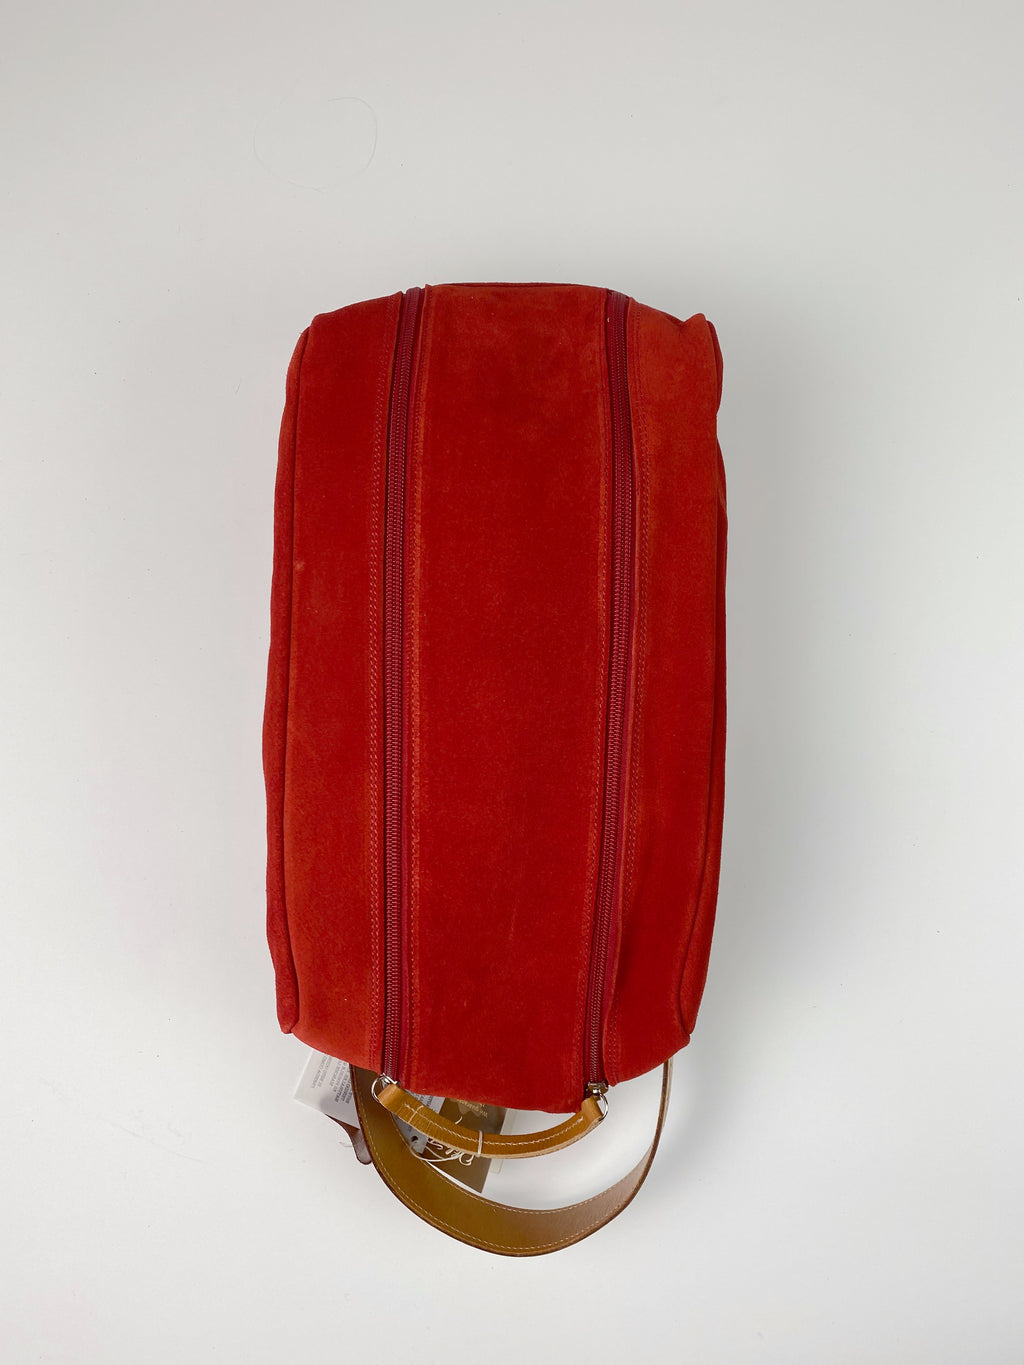 Barcelona Suede Shoe Bag - Peanuts and Golf in Red